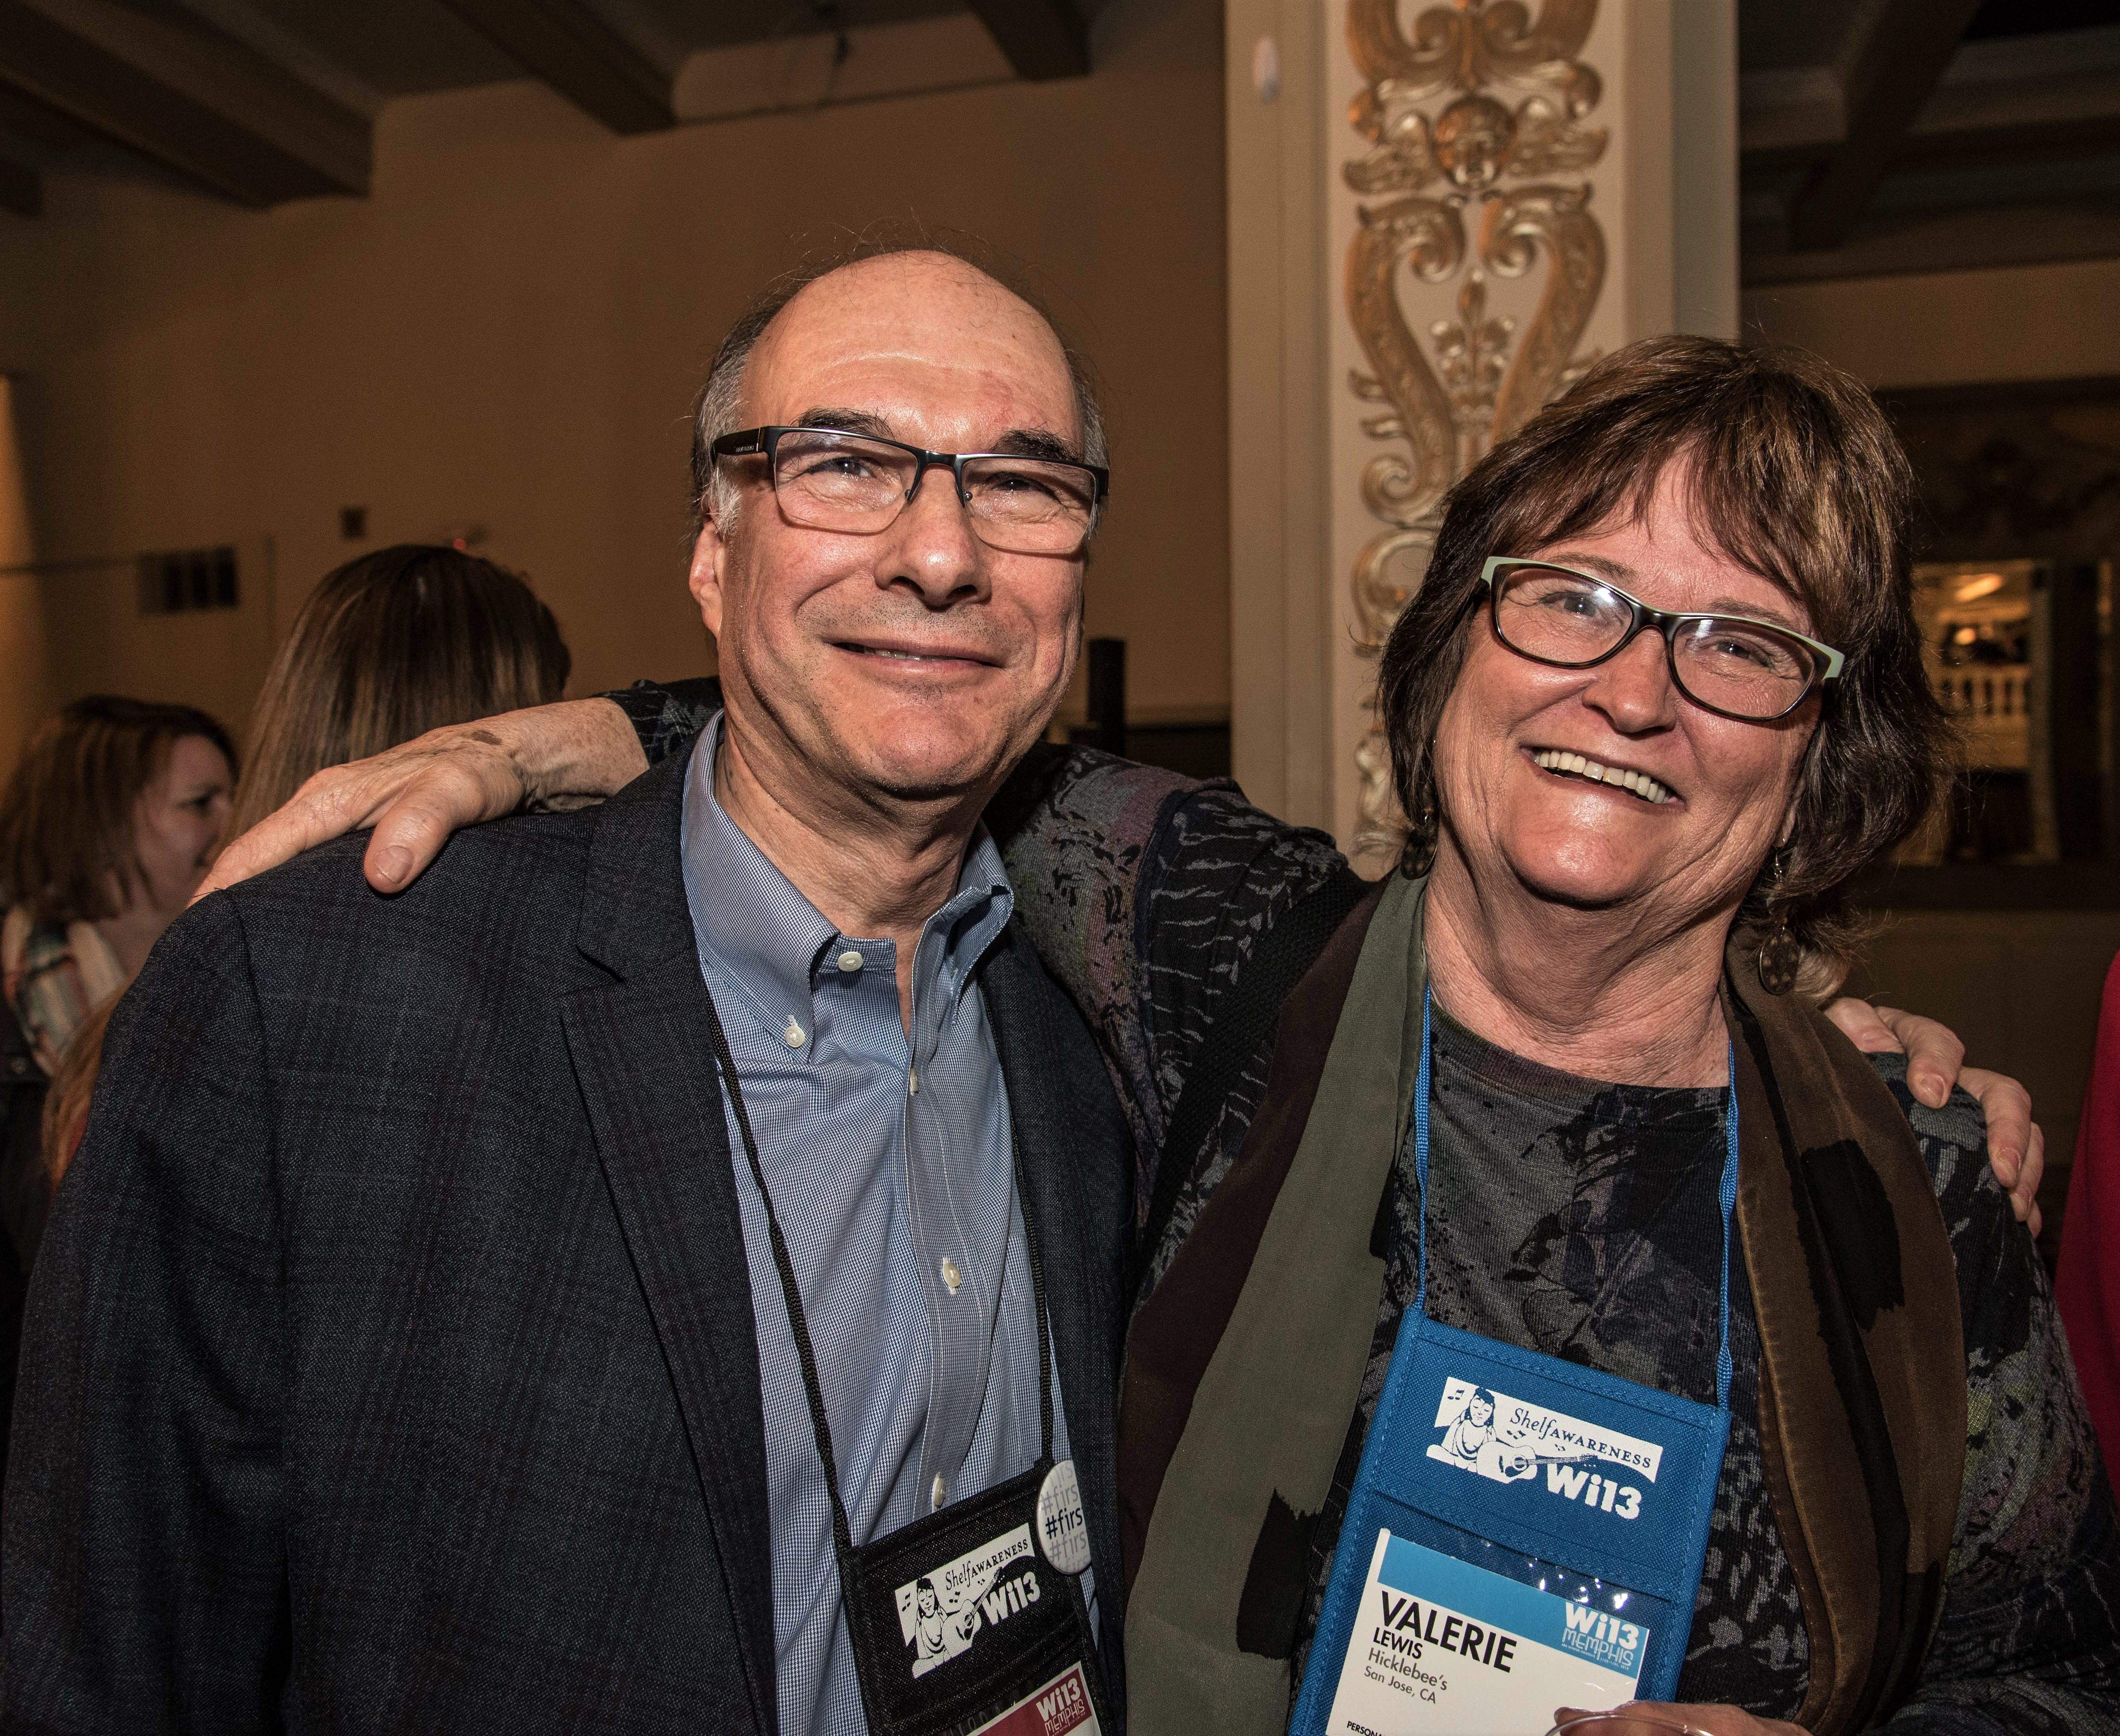 ABA CEO Oren Teicher and Valerie Lewis of Hicklebee's.